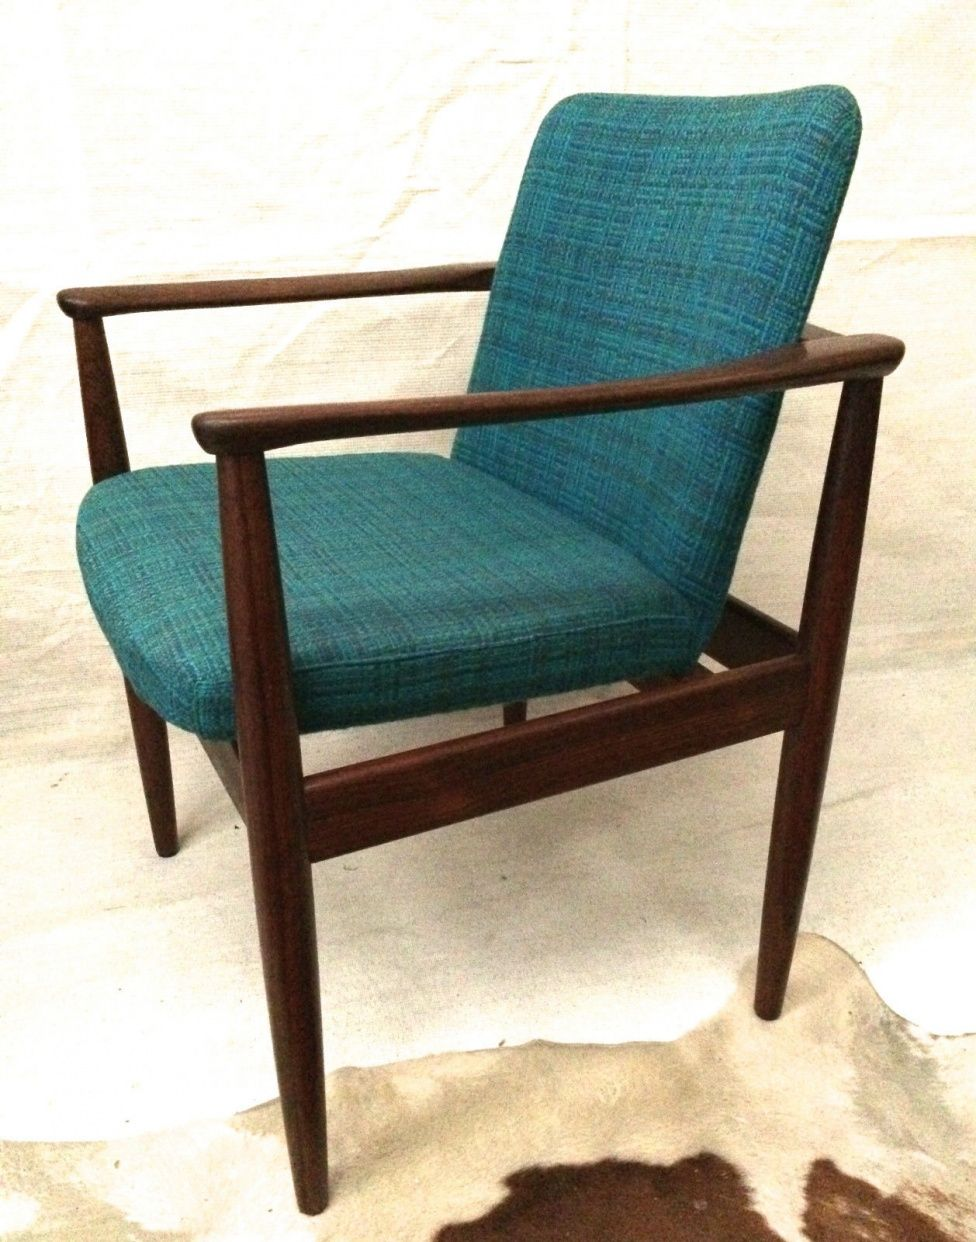 Original Parker Office Occasional Study Chair Solid Teak Retro Scandi Design Retro Chair Retro Furniture Chair